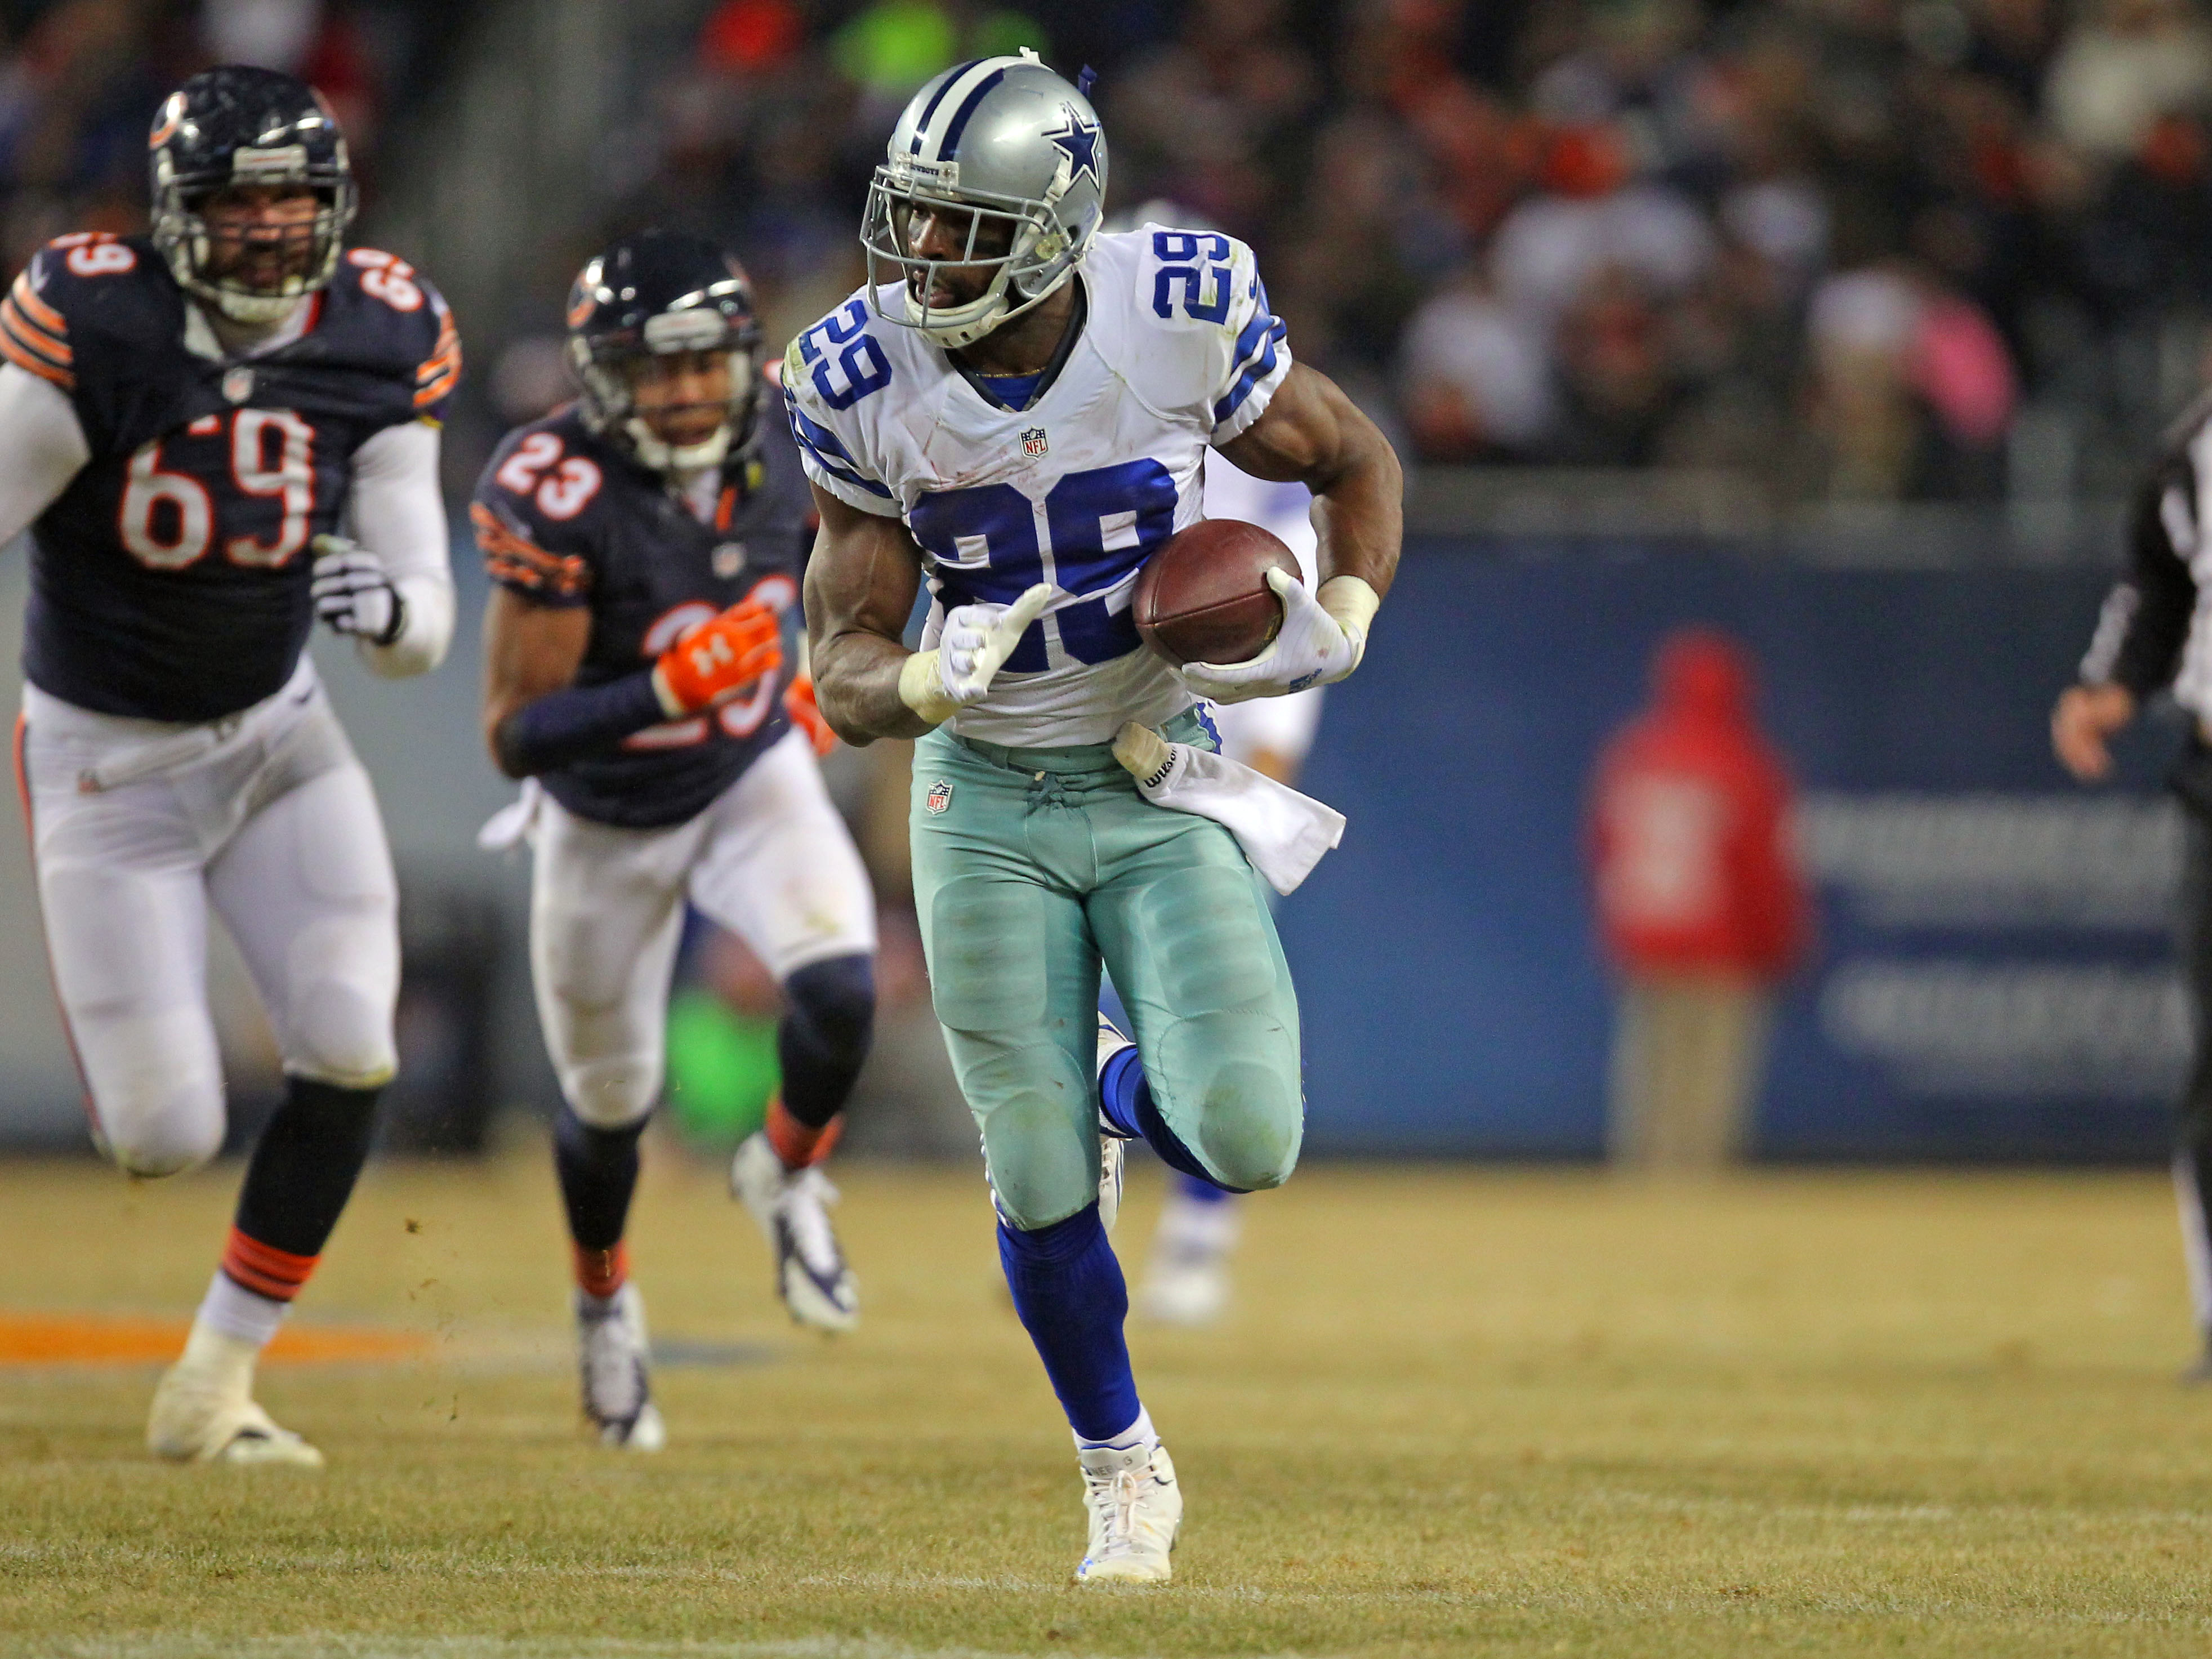 Finding additional help at running back after losing DeMarco Murray is a priority for the Cowboys. (Dennis Wierzbicki, USA TODAY Sports)